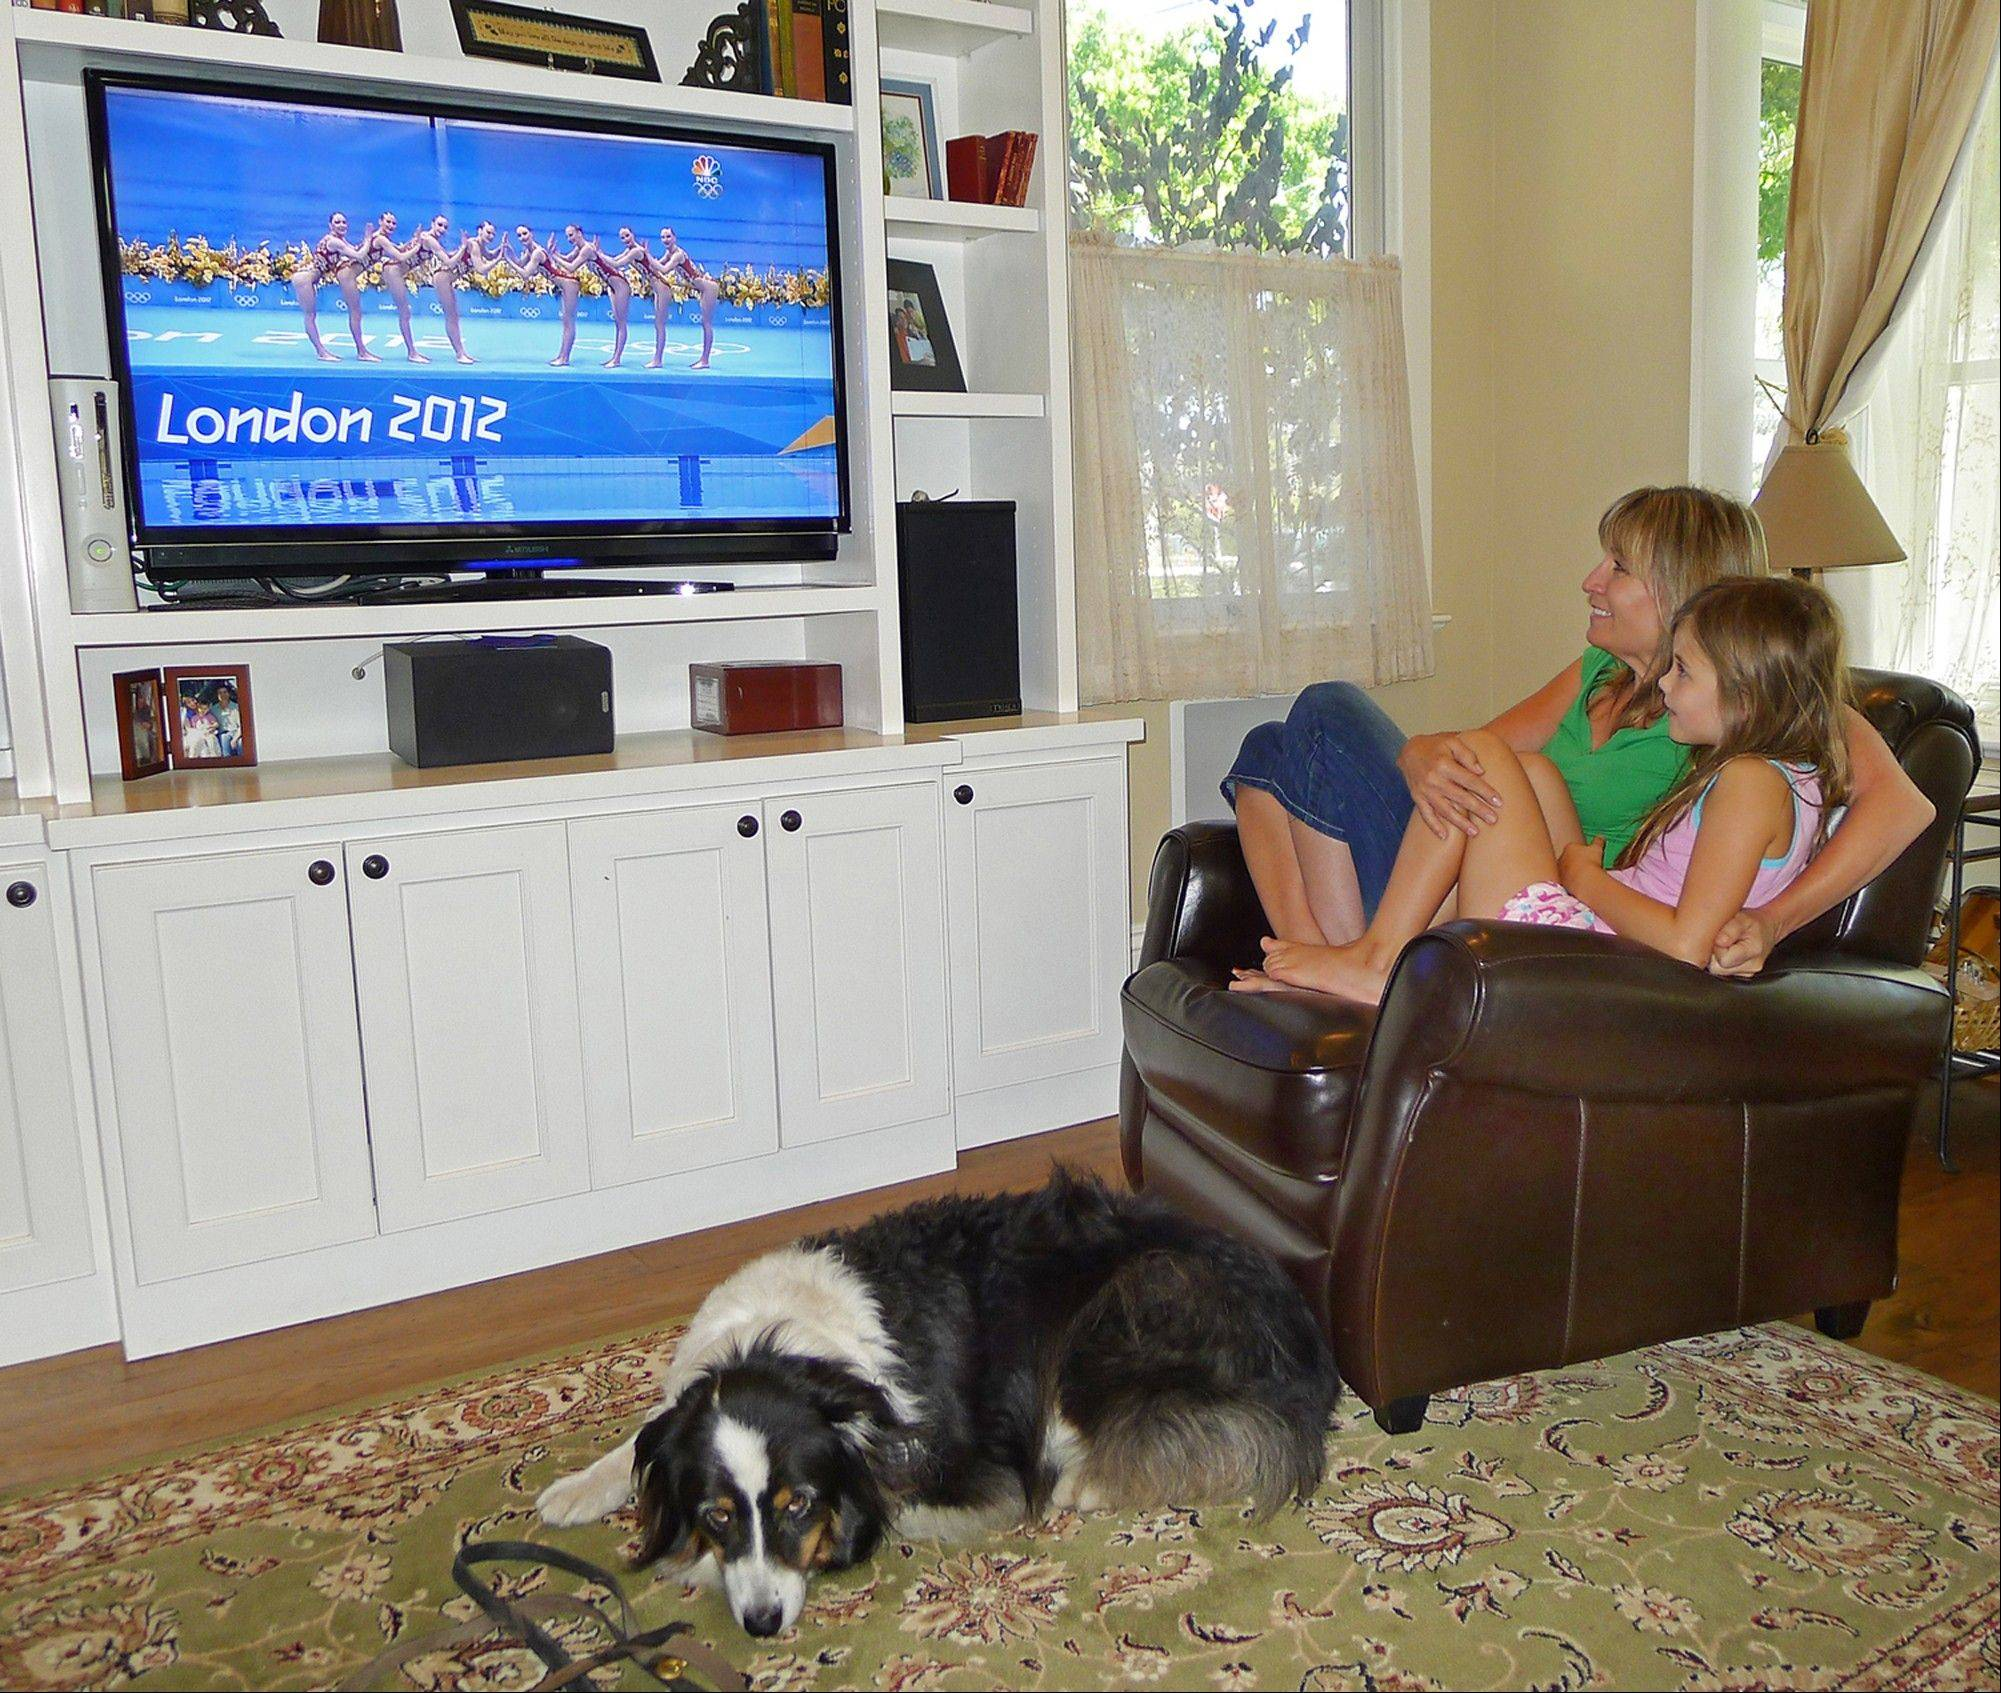 "Julie O'Grady watches the 2012 Olympics with her daughter Molly and dog Bosco Thursday in her home in Palo Alto, Calif. If Bosco, Julie O'Grady's Australian shepherd in Palo Alto, Calif., could speak, he'd likely be shrieking, ""Get a grip woman!"" His pained, pathetic pleas haven't been enough to pry the tech industry public relations specialist away from the Olympics. Nearly eight in 10 Americans, have watched or followed the games either on television, online or via social networks, according to a survey done Aug. 2-5 by the Pew Research Center for the People & the Press."